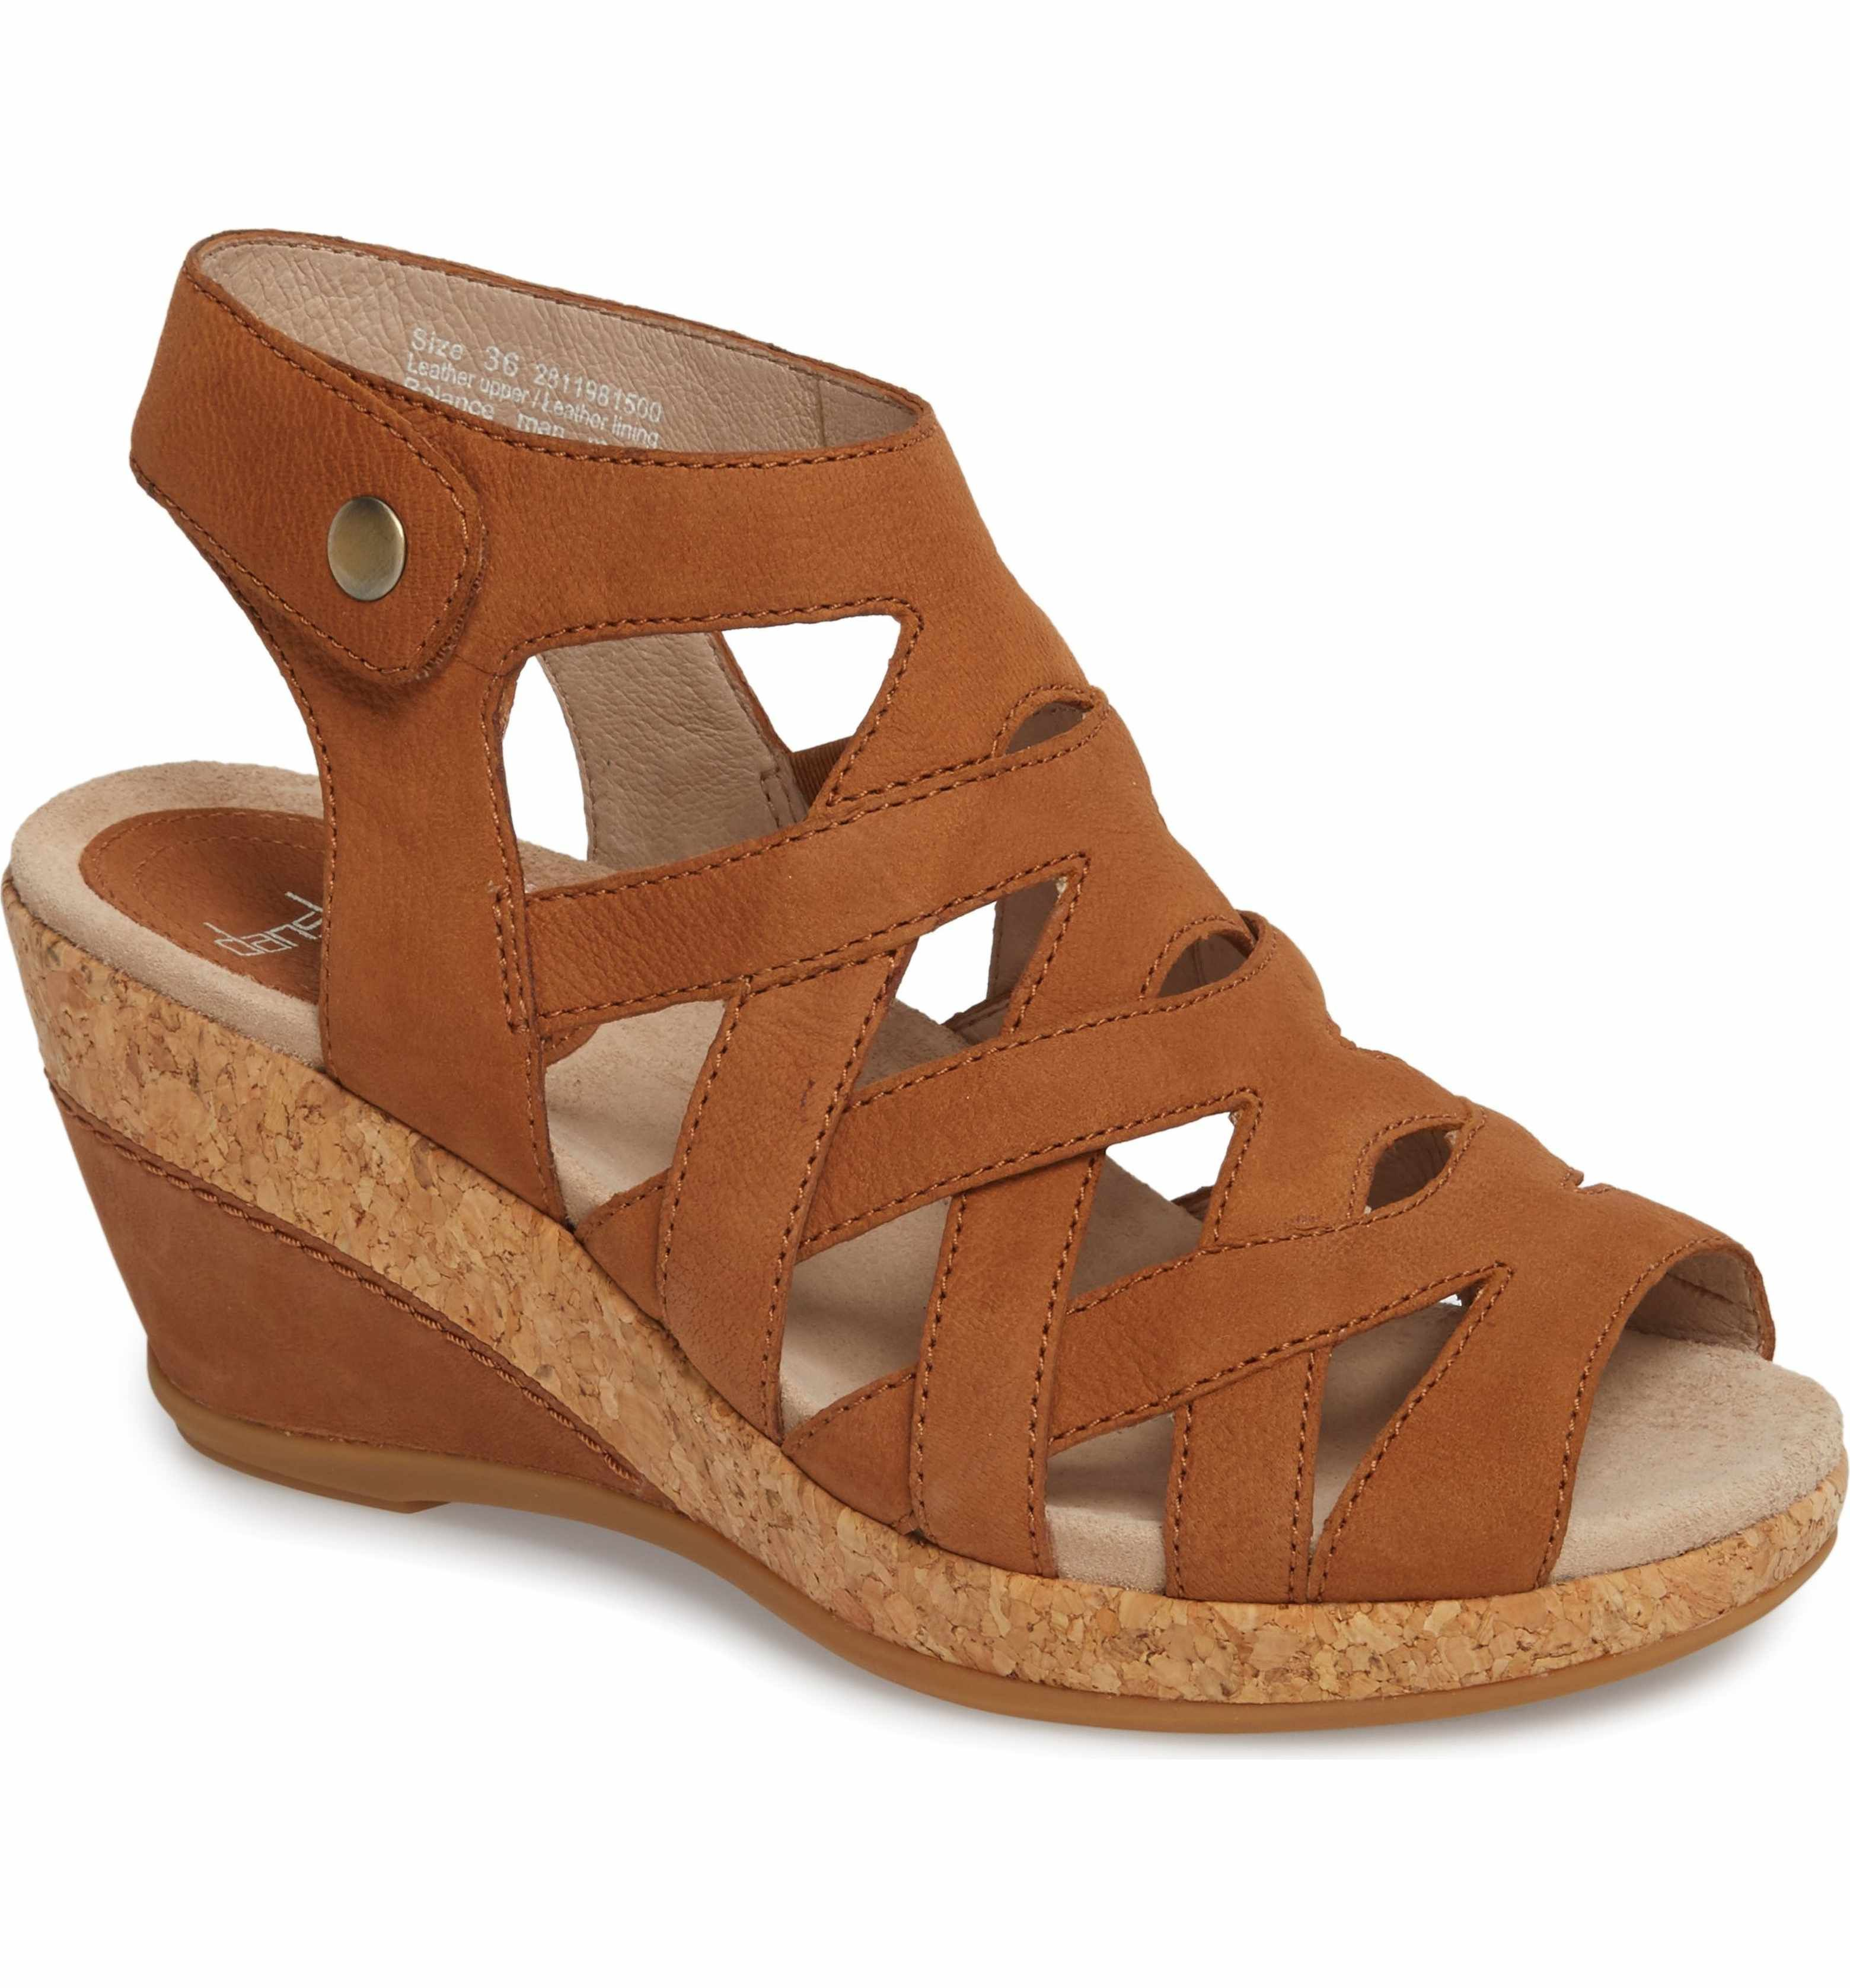 Dansko Women's Cecily Caged Wedge Sandal a7qXeW